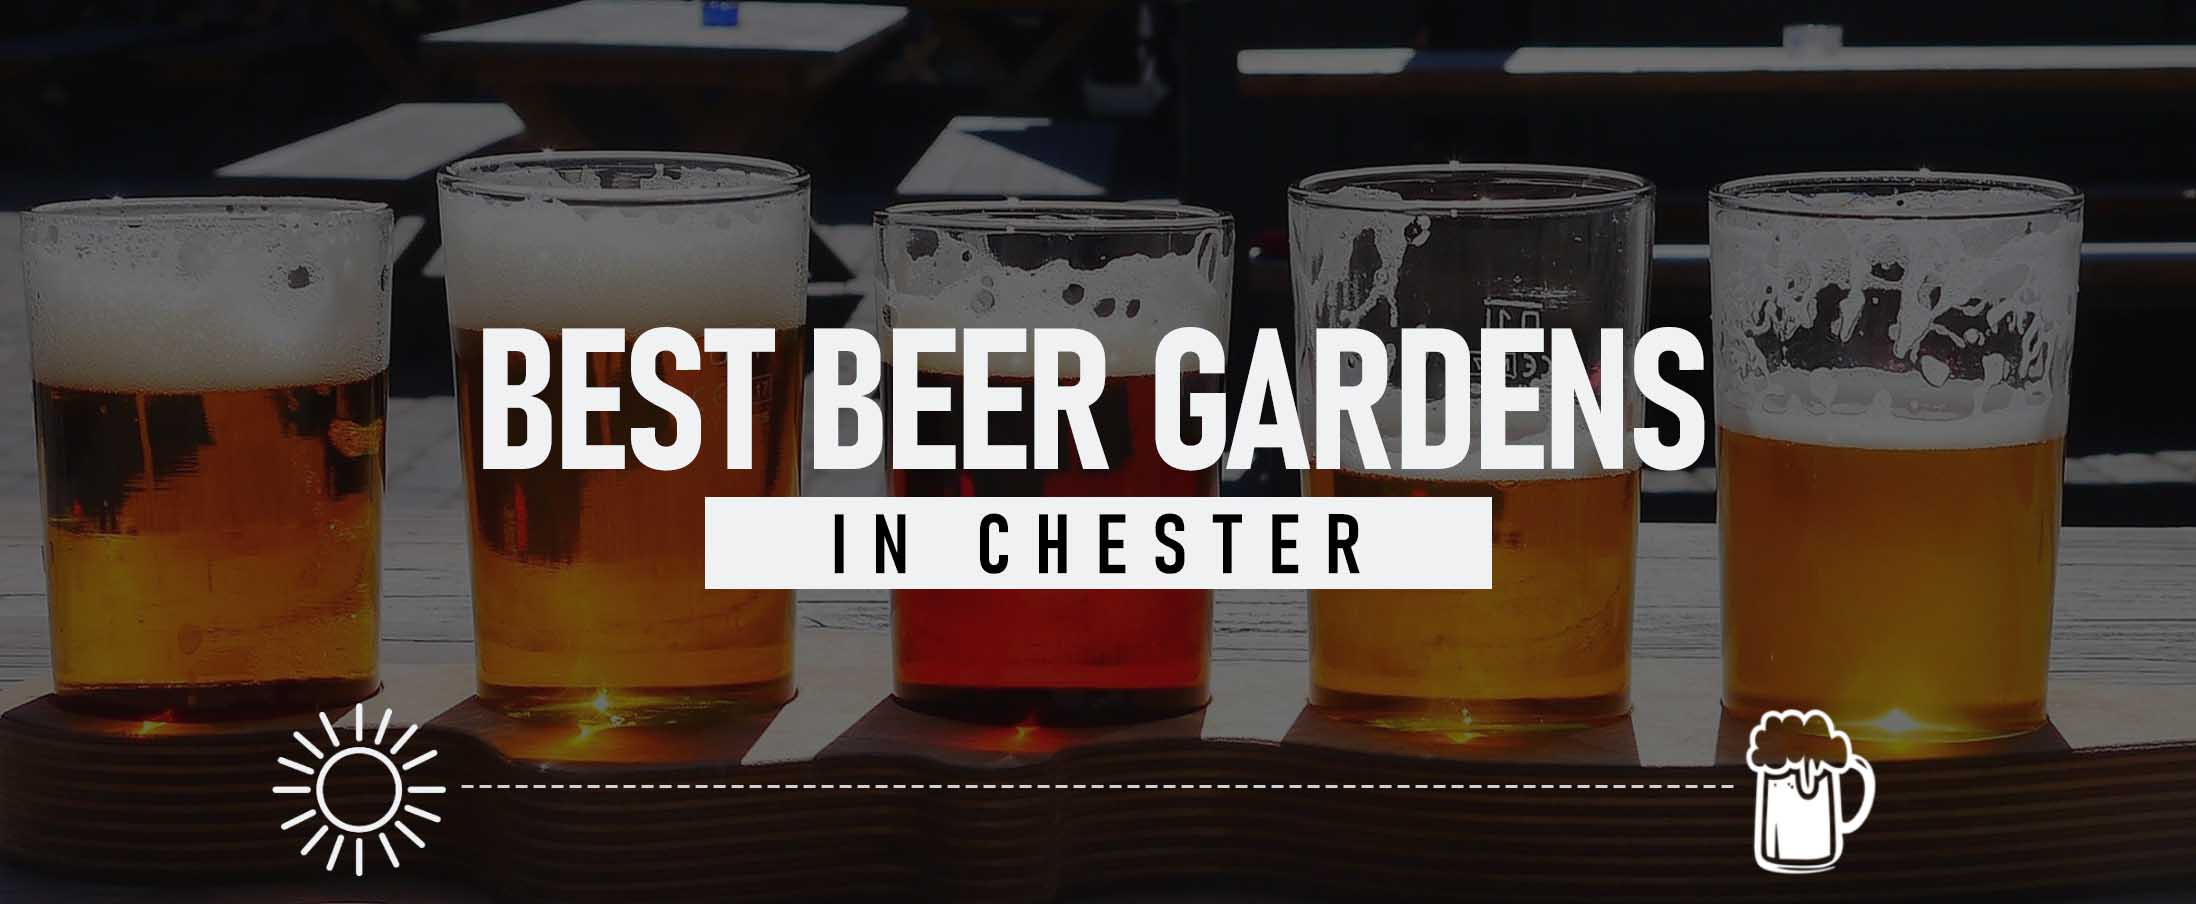 Best Beer Gardens in Chester